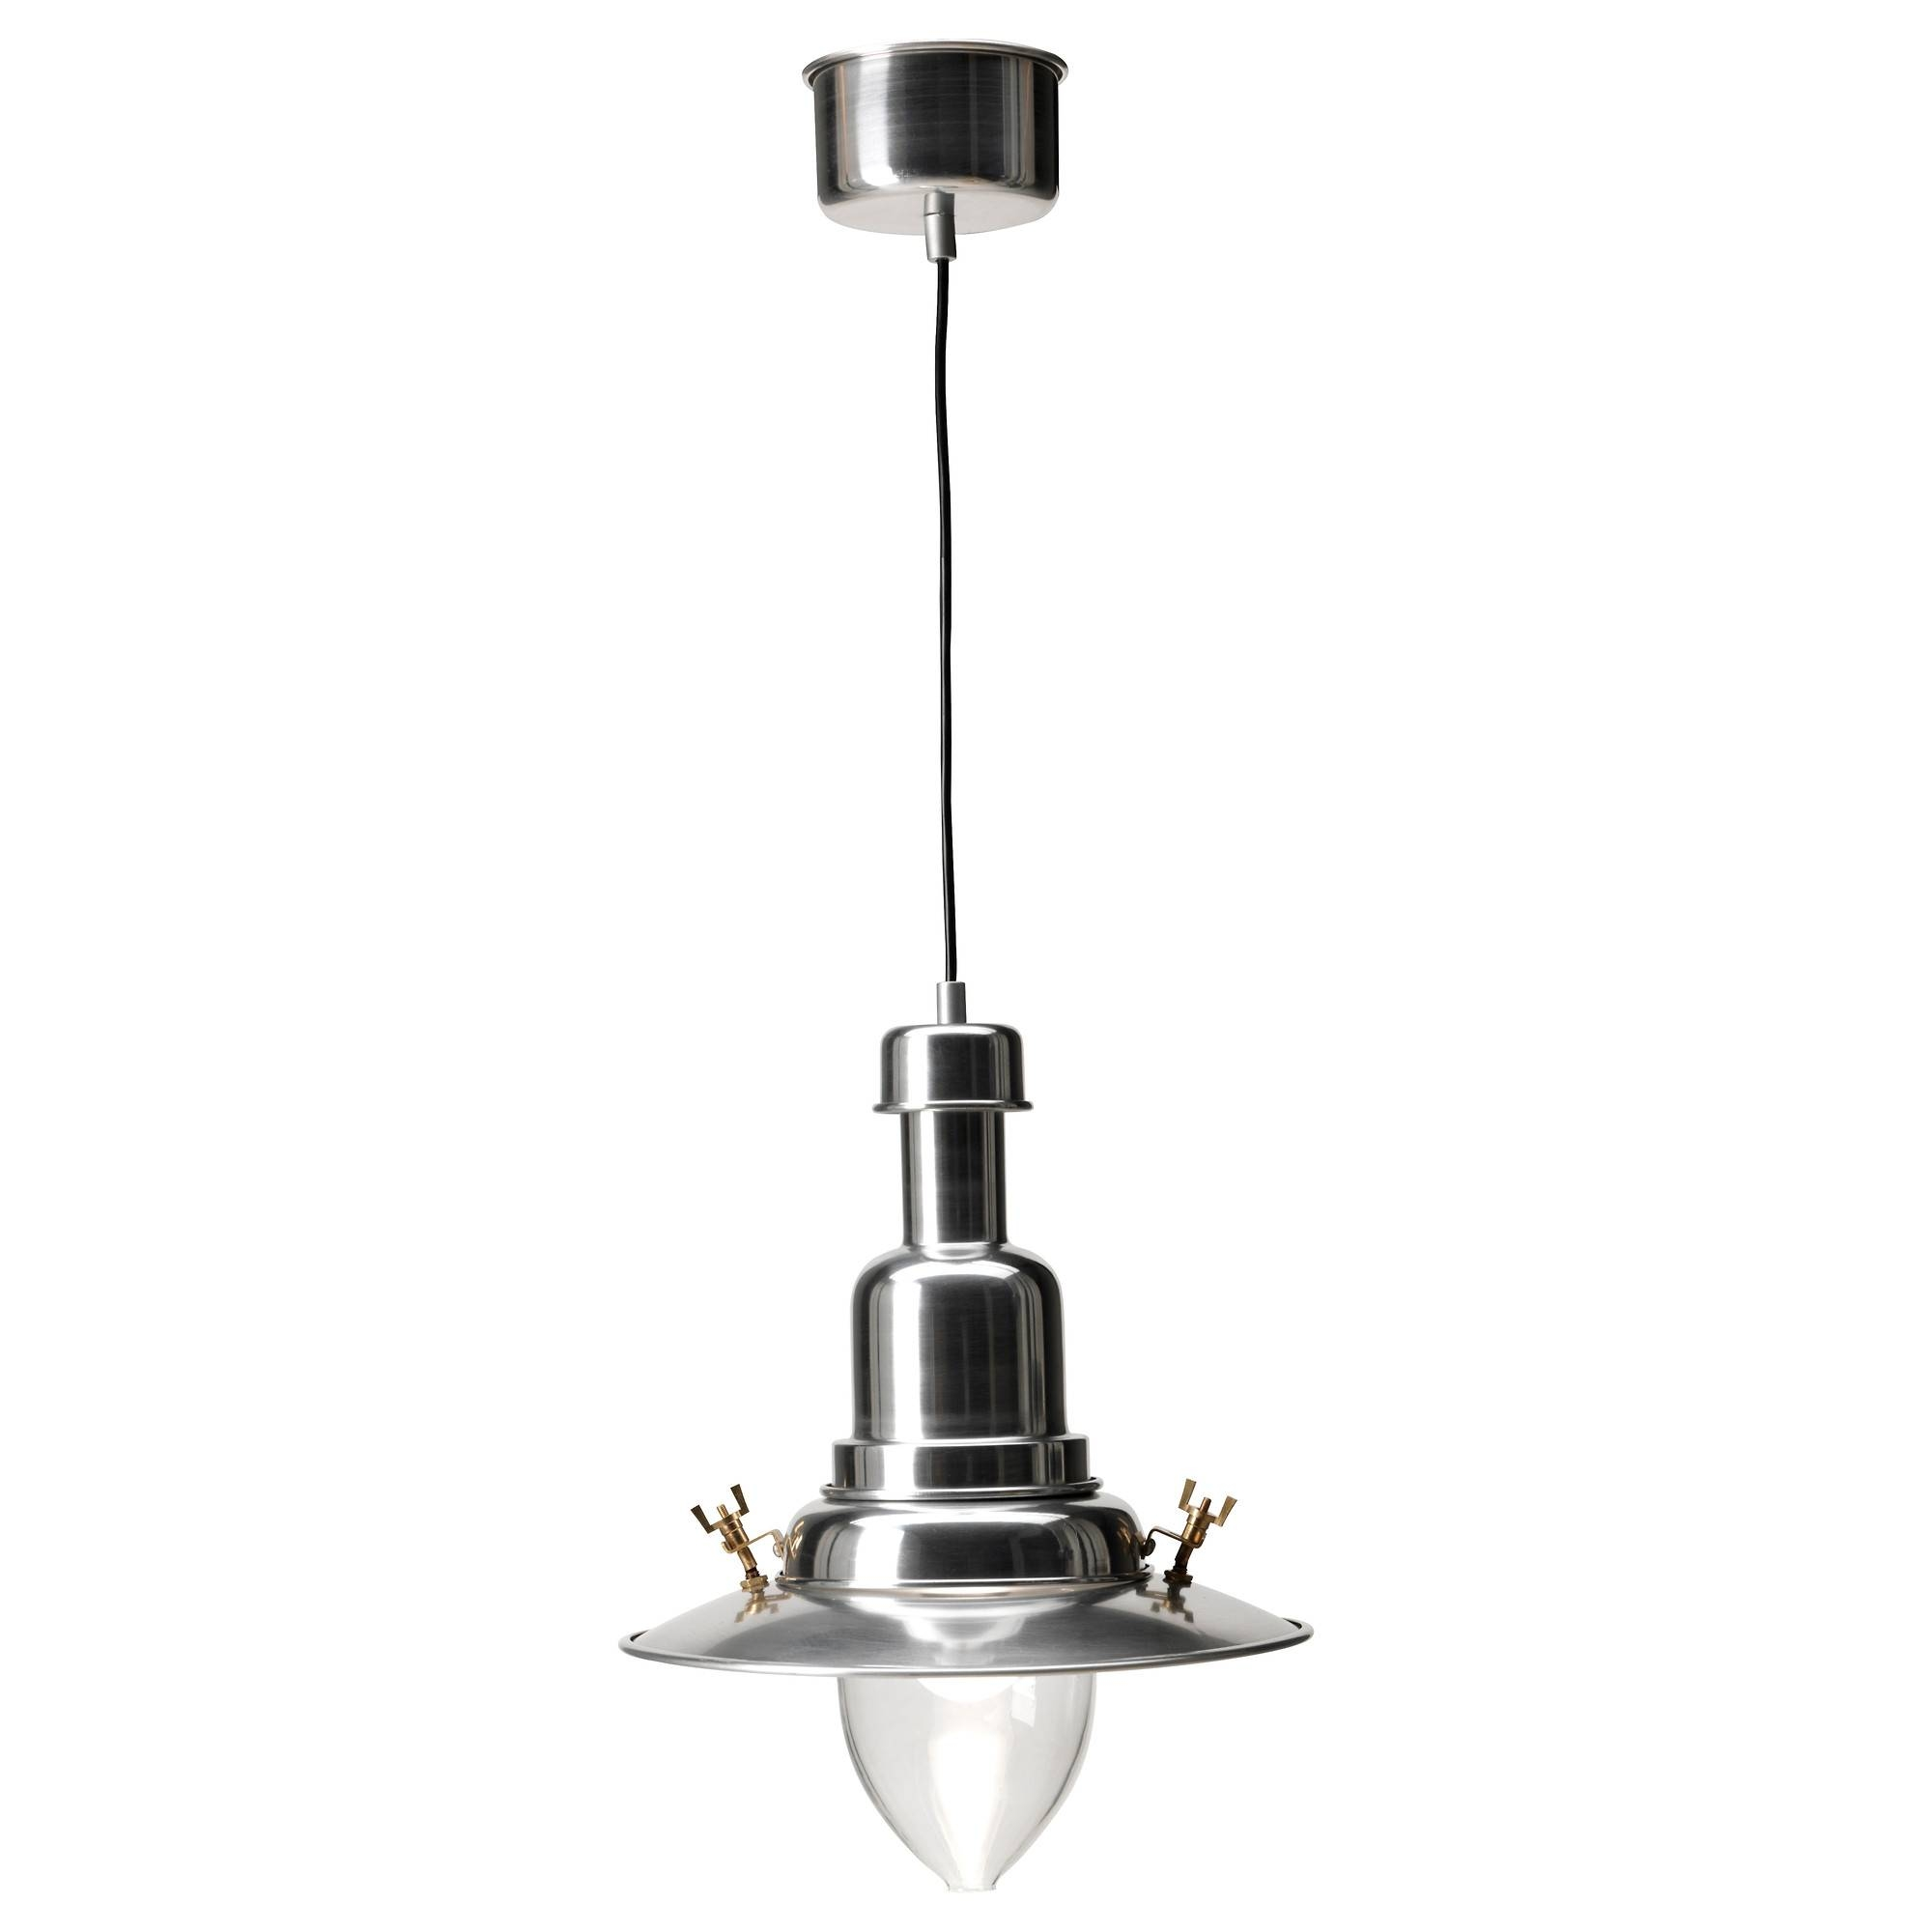 Ceiling Lights & Lamps - Ikea regarding Ikea Plug in Pendant Lights (Image 2 of 15)